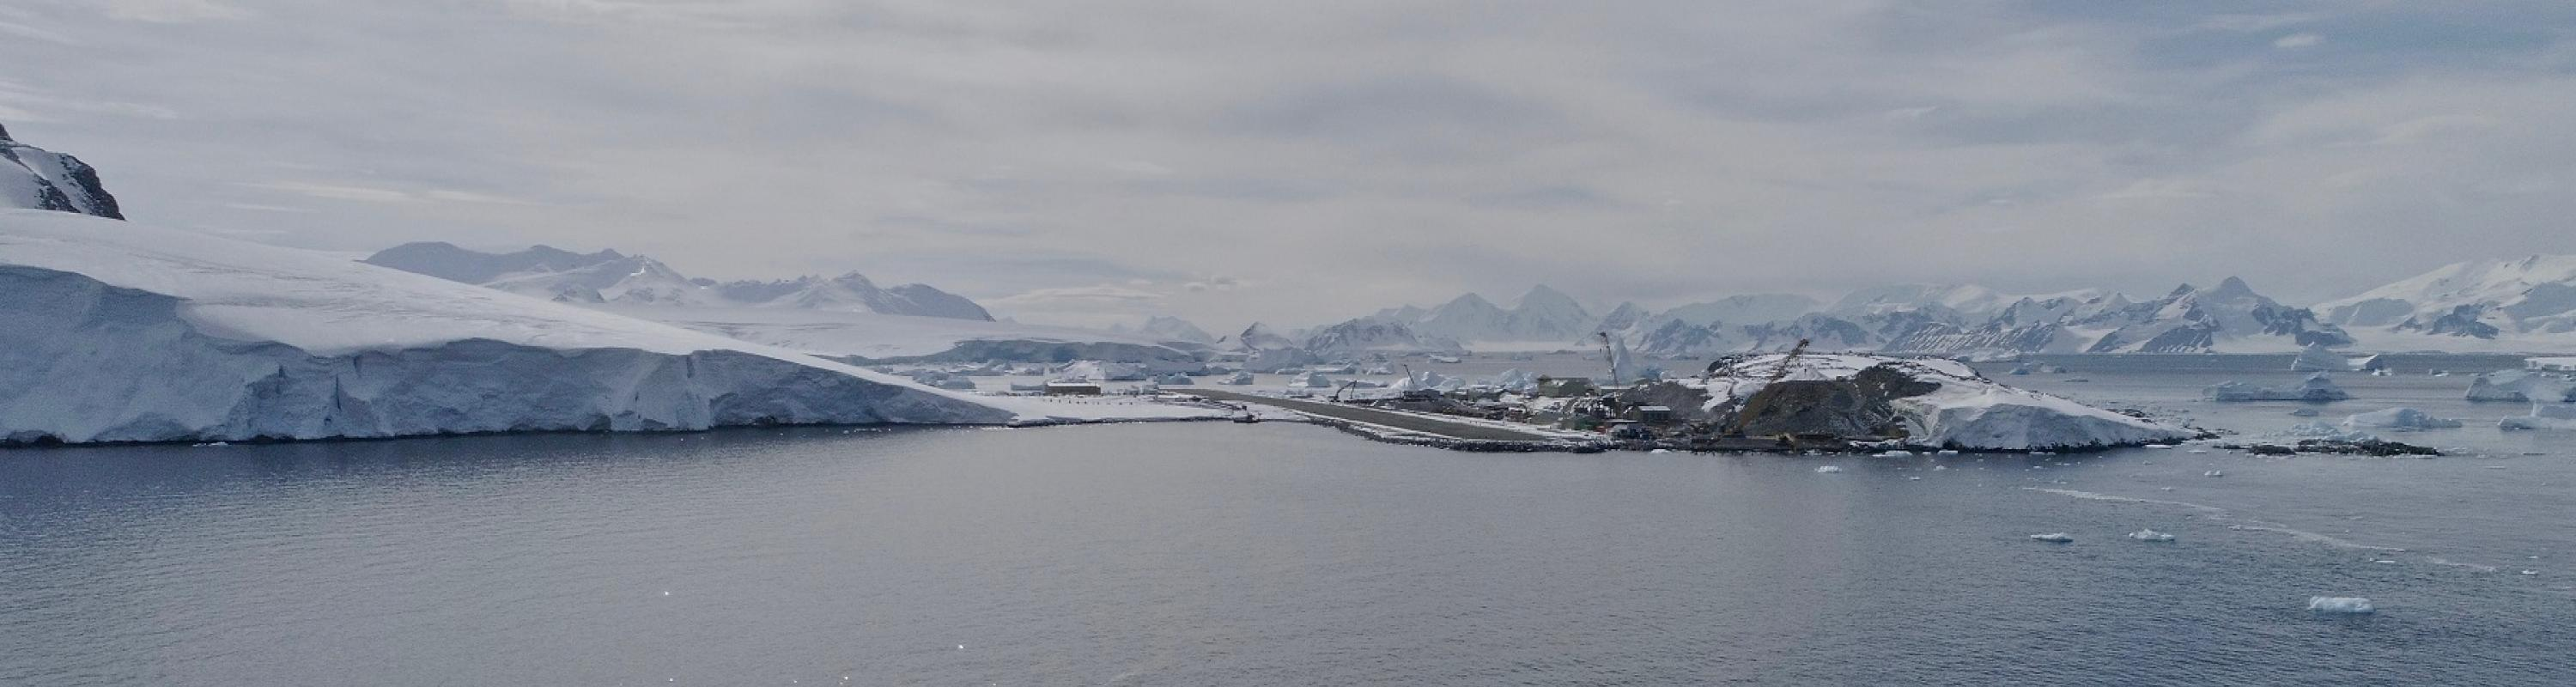 View of Rothera Station from a drone above the Nathaniel B. Palmer. Photo credit: Aleksandra Mazur